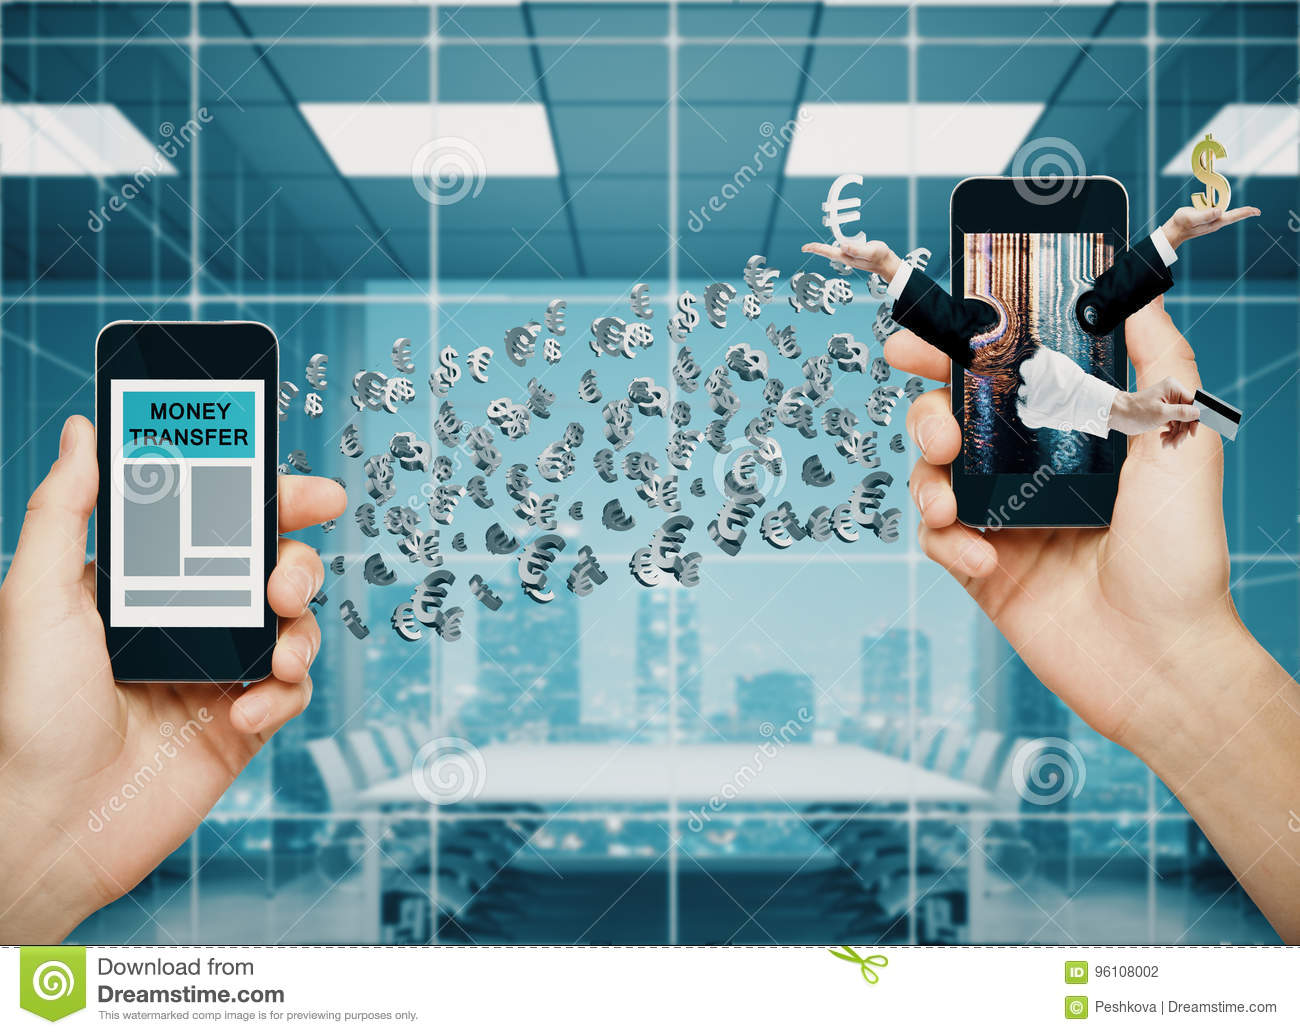 Money Transfer Concept Stock Photo Image Of Gadgets 96108002